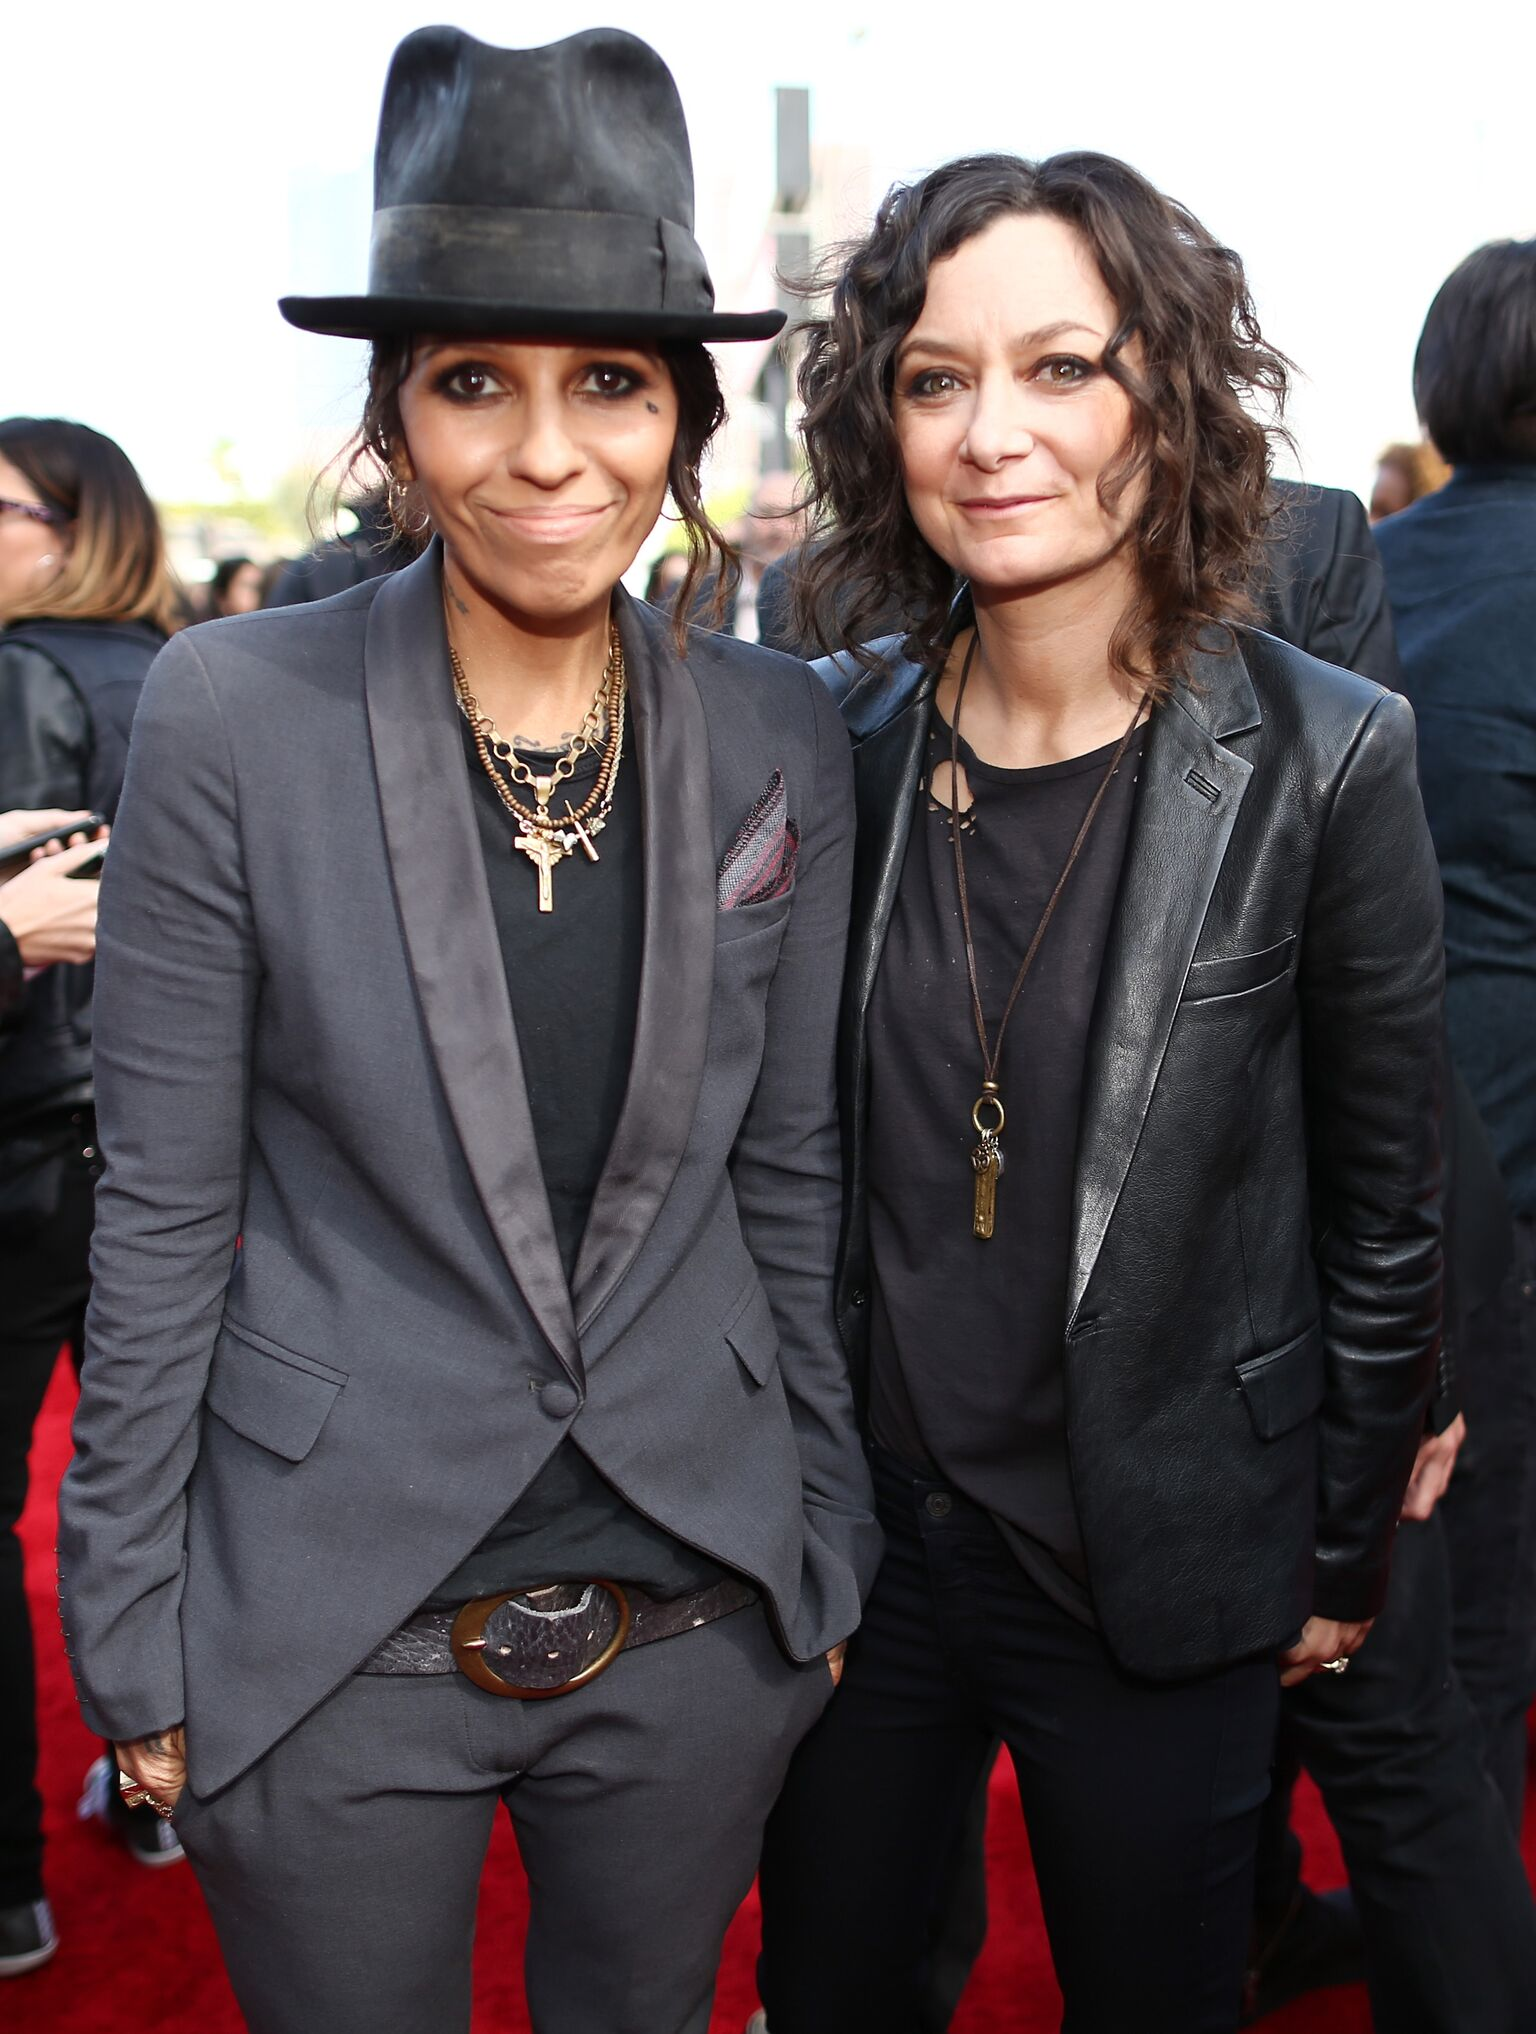 Linda Perry and actress Sara Gilbert attend the 2014 MTV Movie Awards at Nokia Theatre L.A. Live | Getty Images